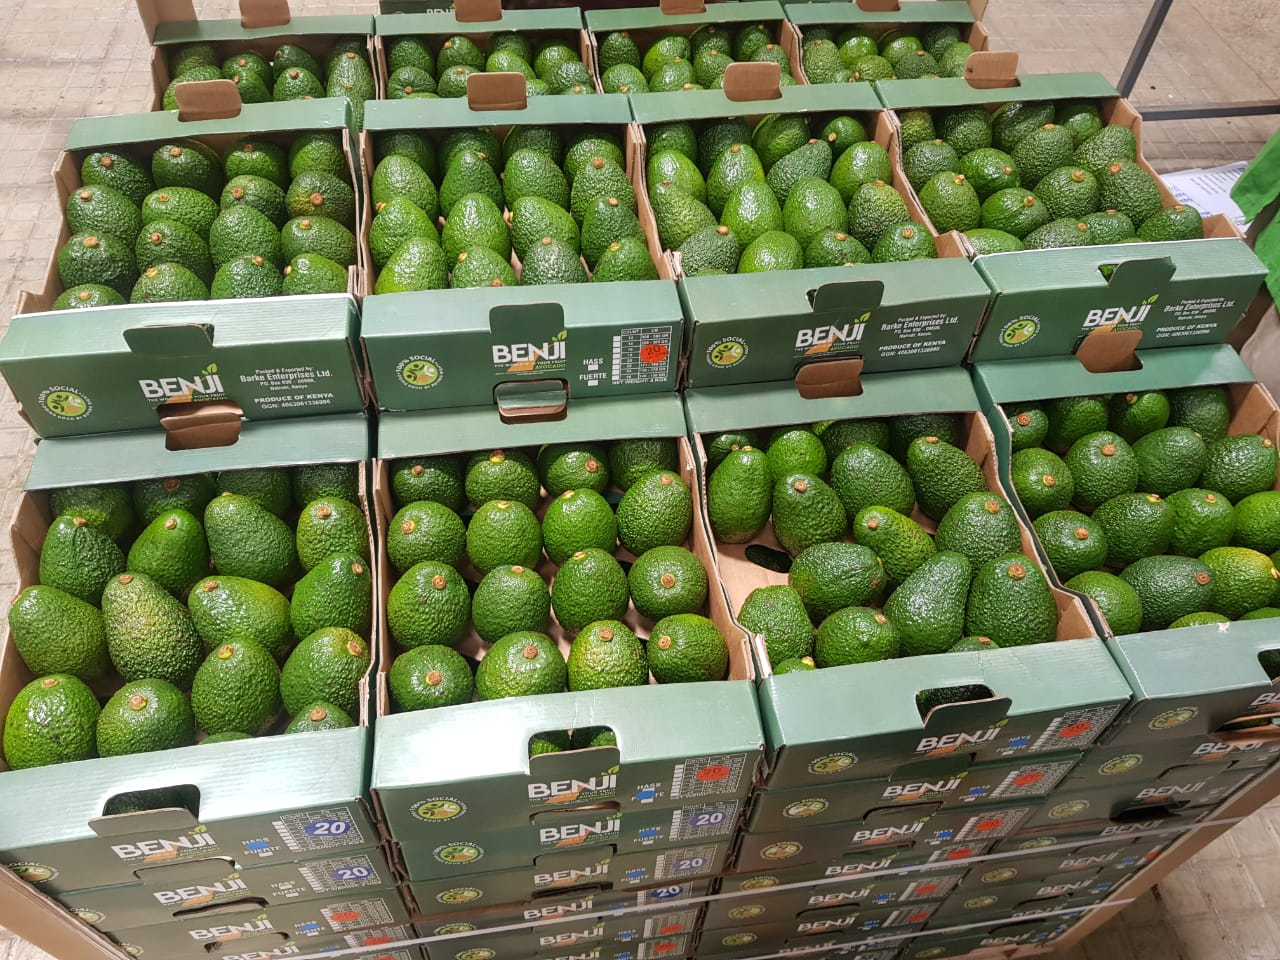 Boxes of harvested avocadoes in Kenya - Beva Fruits International (BFI)